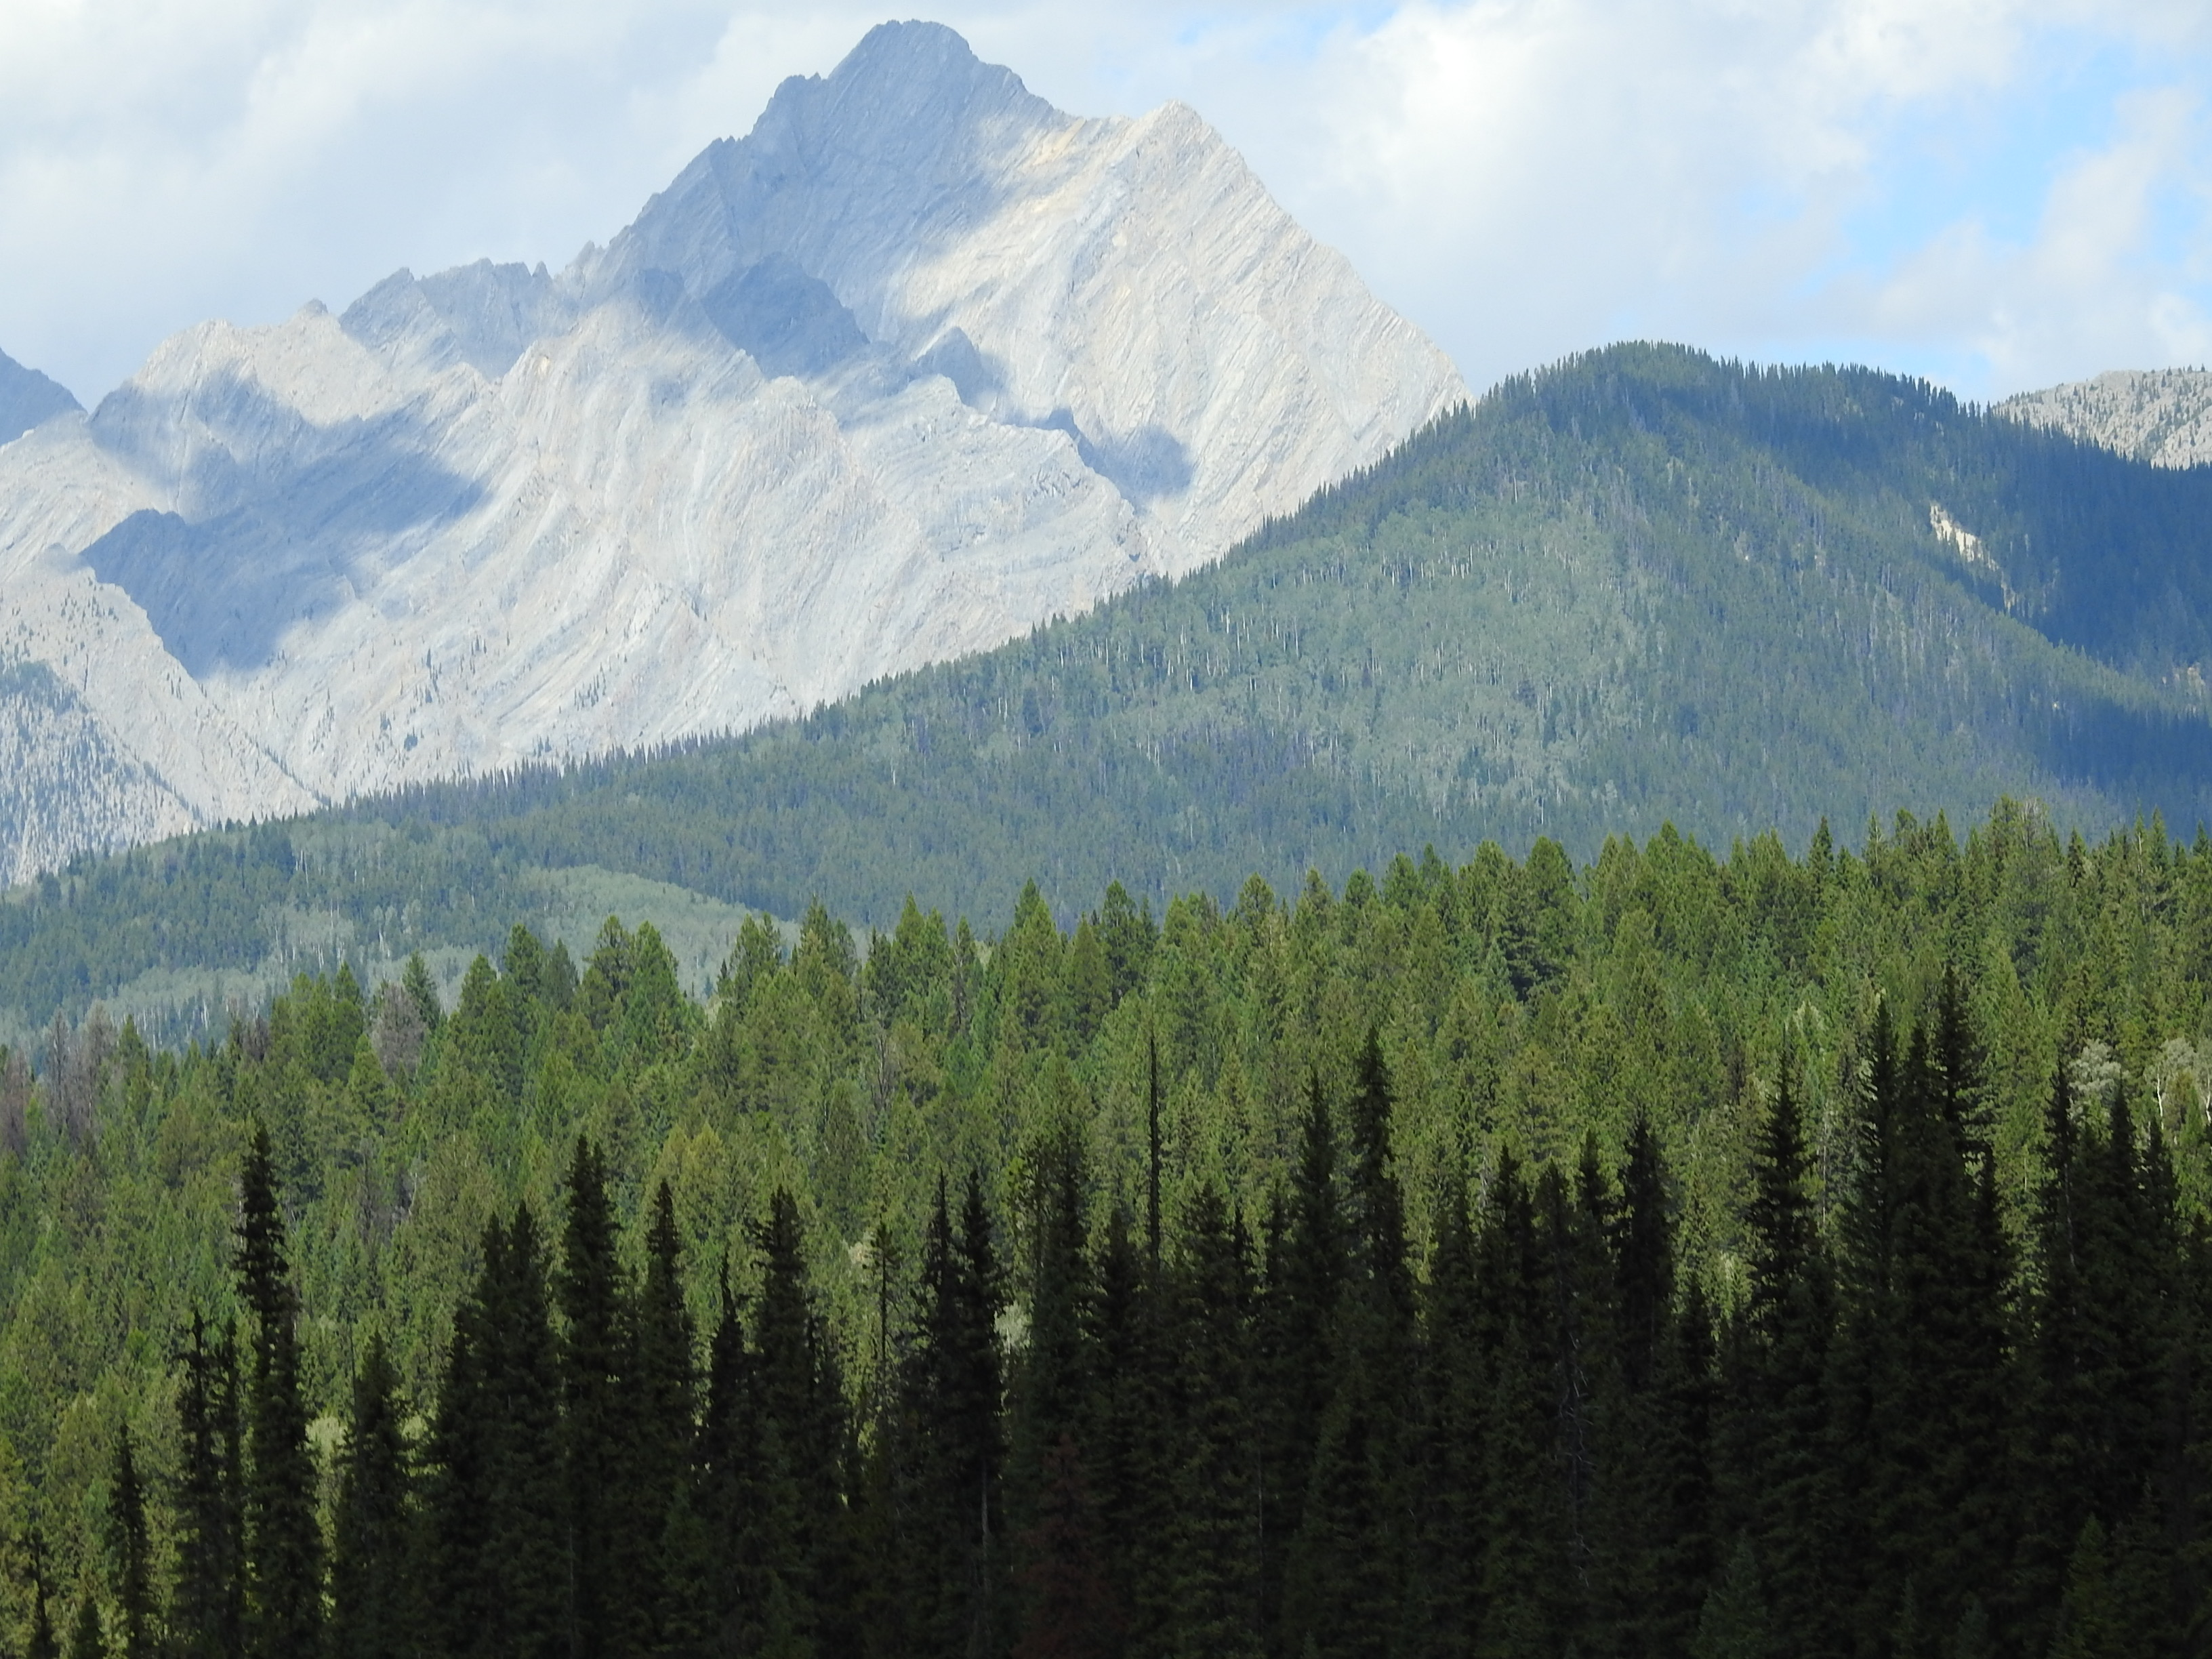 Coming Into Banff